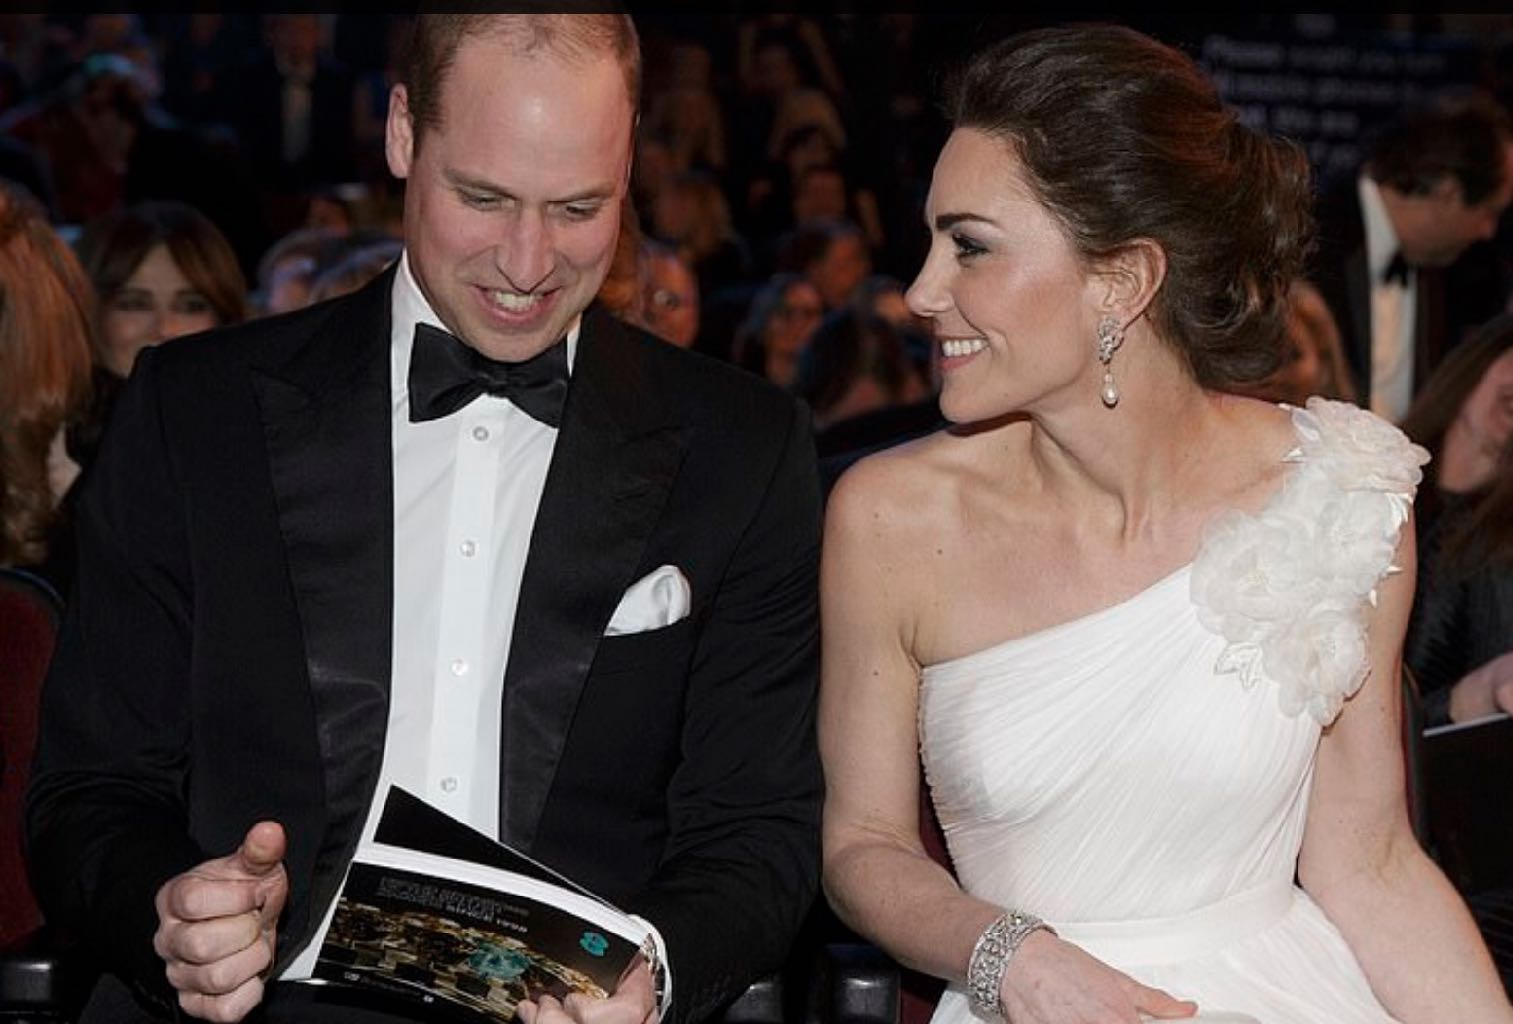 Prince William with Kate Middleton who is wearing Princess Diana's pearl and diamond earrings and a diamond bracelet from the Queen's collection with an Alexander McQueen dress.